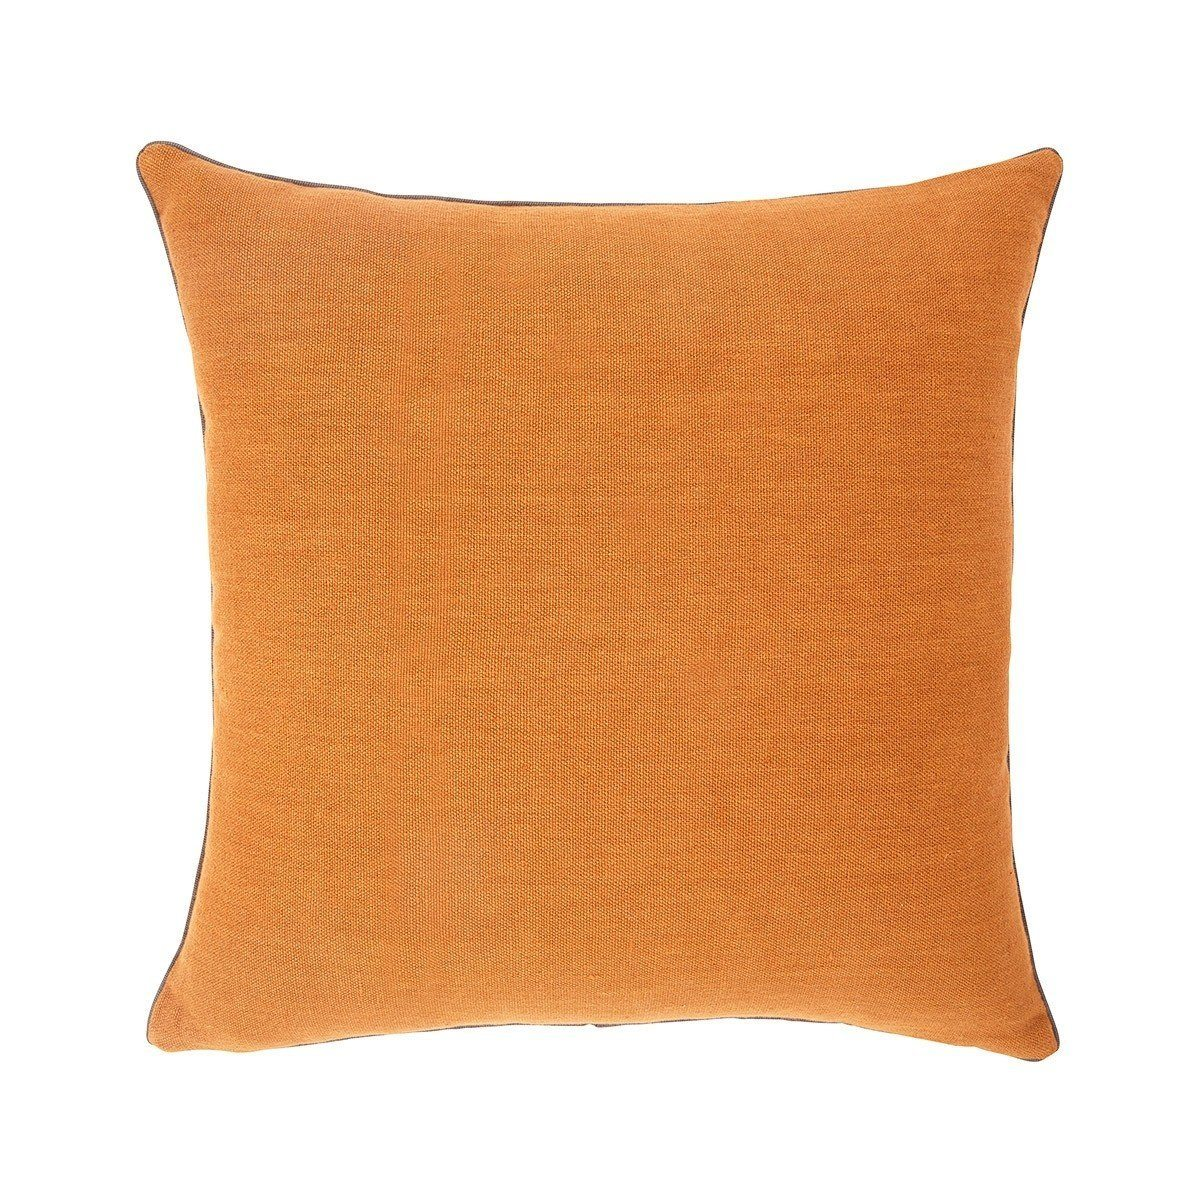 Pigment Cuir Orange Throw Pillows by Iosis | Fig Linens - Front